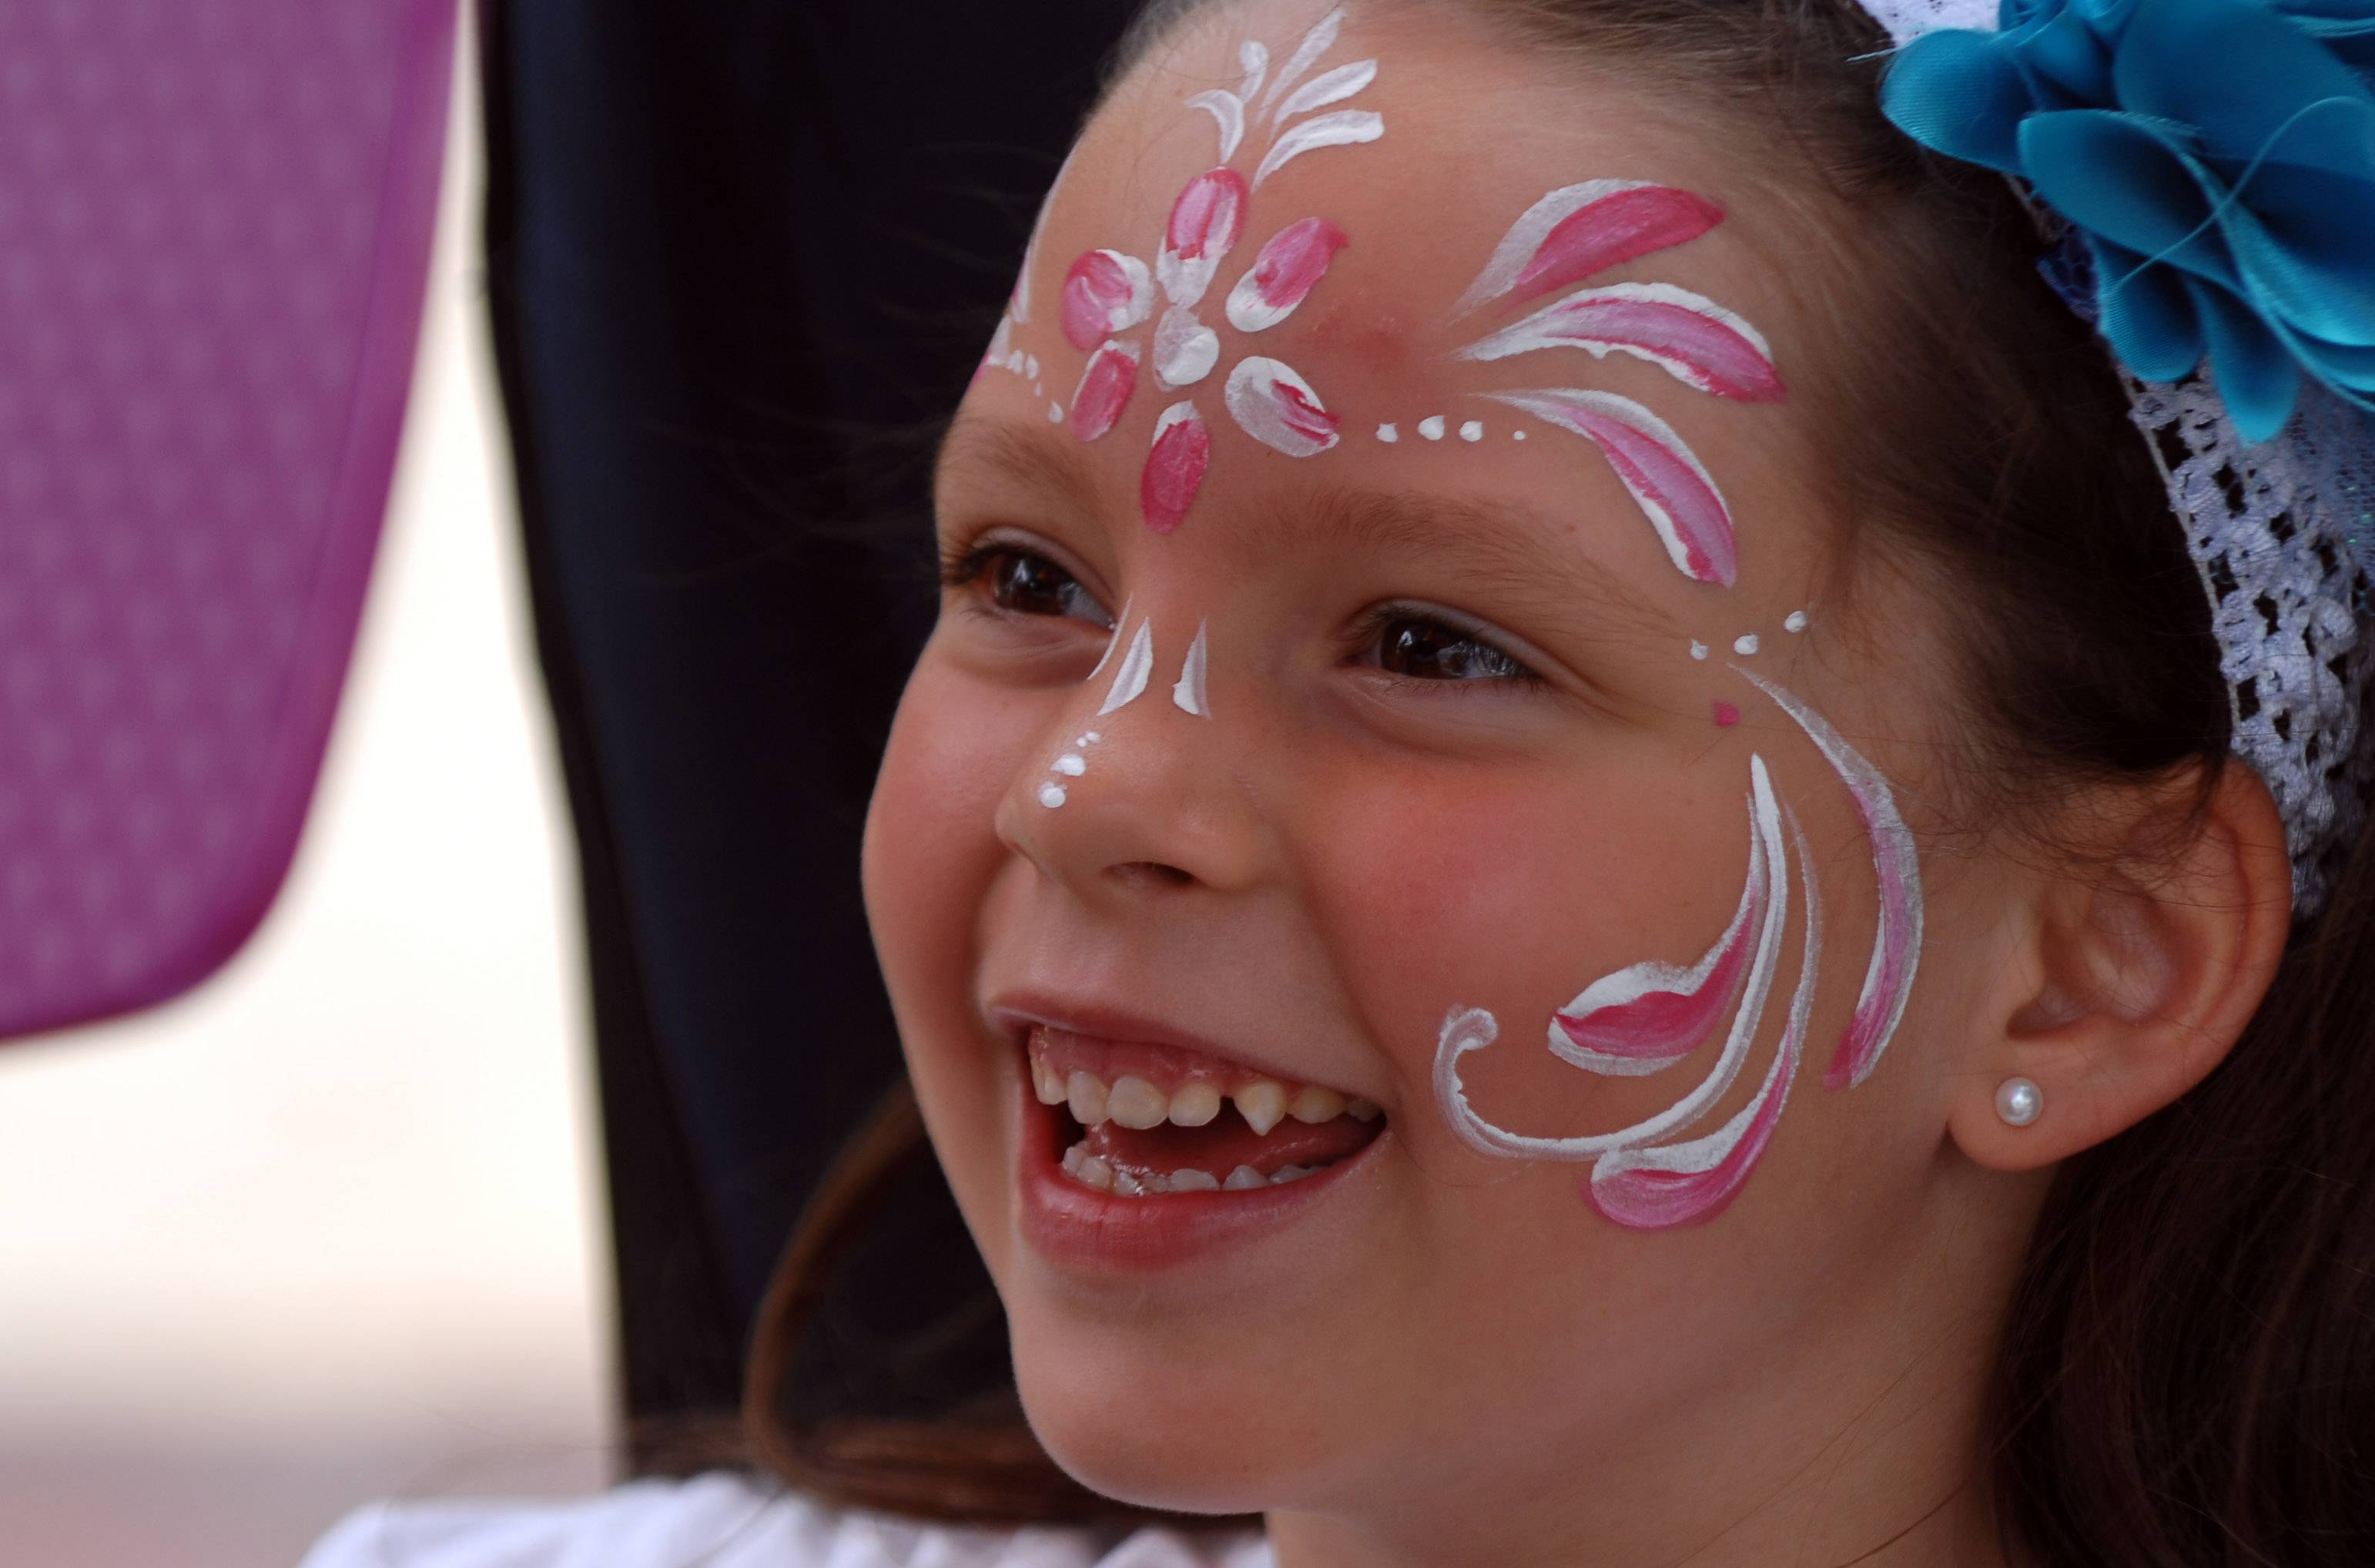 Kids can get their faces painted for free on Tuesday at Swedish Days.